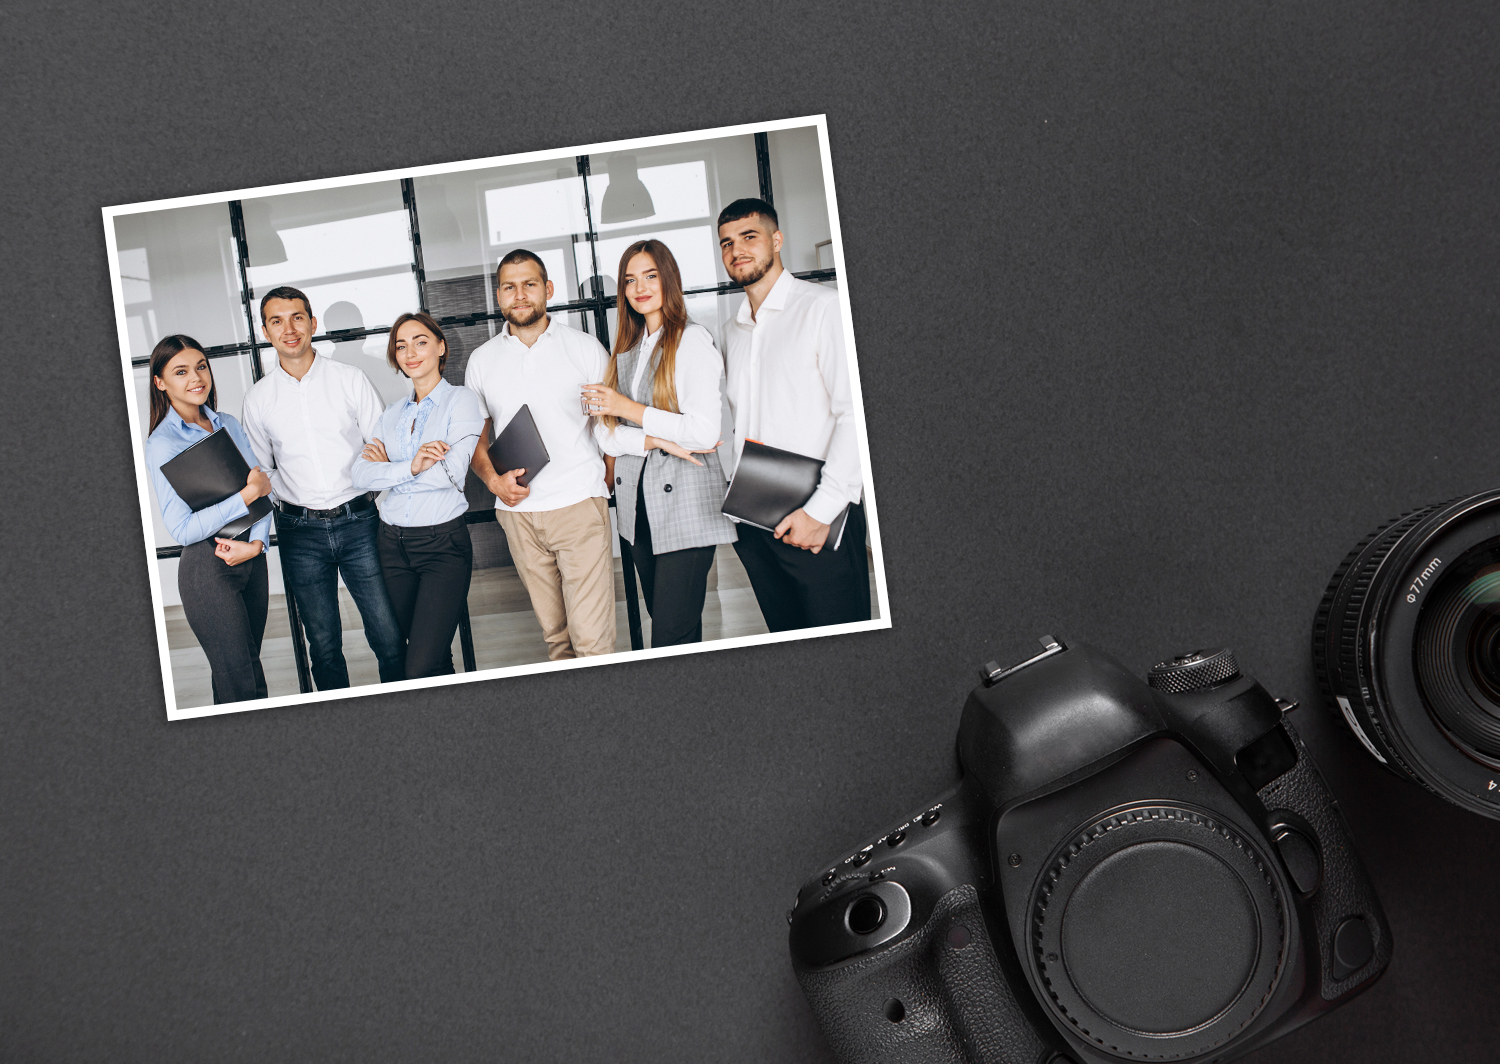 Business photos: The best advices